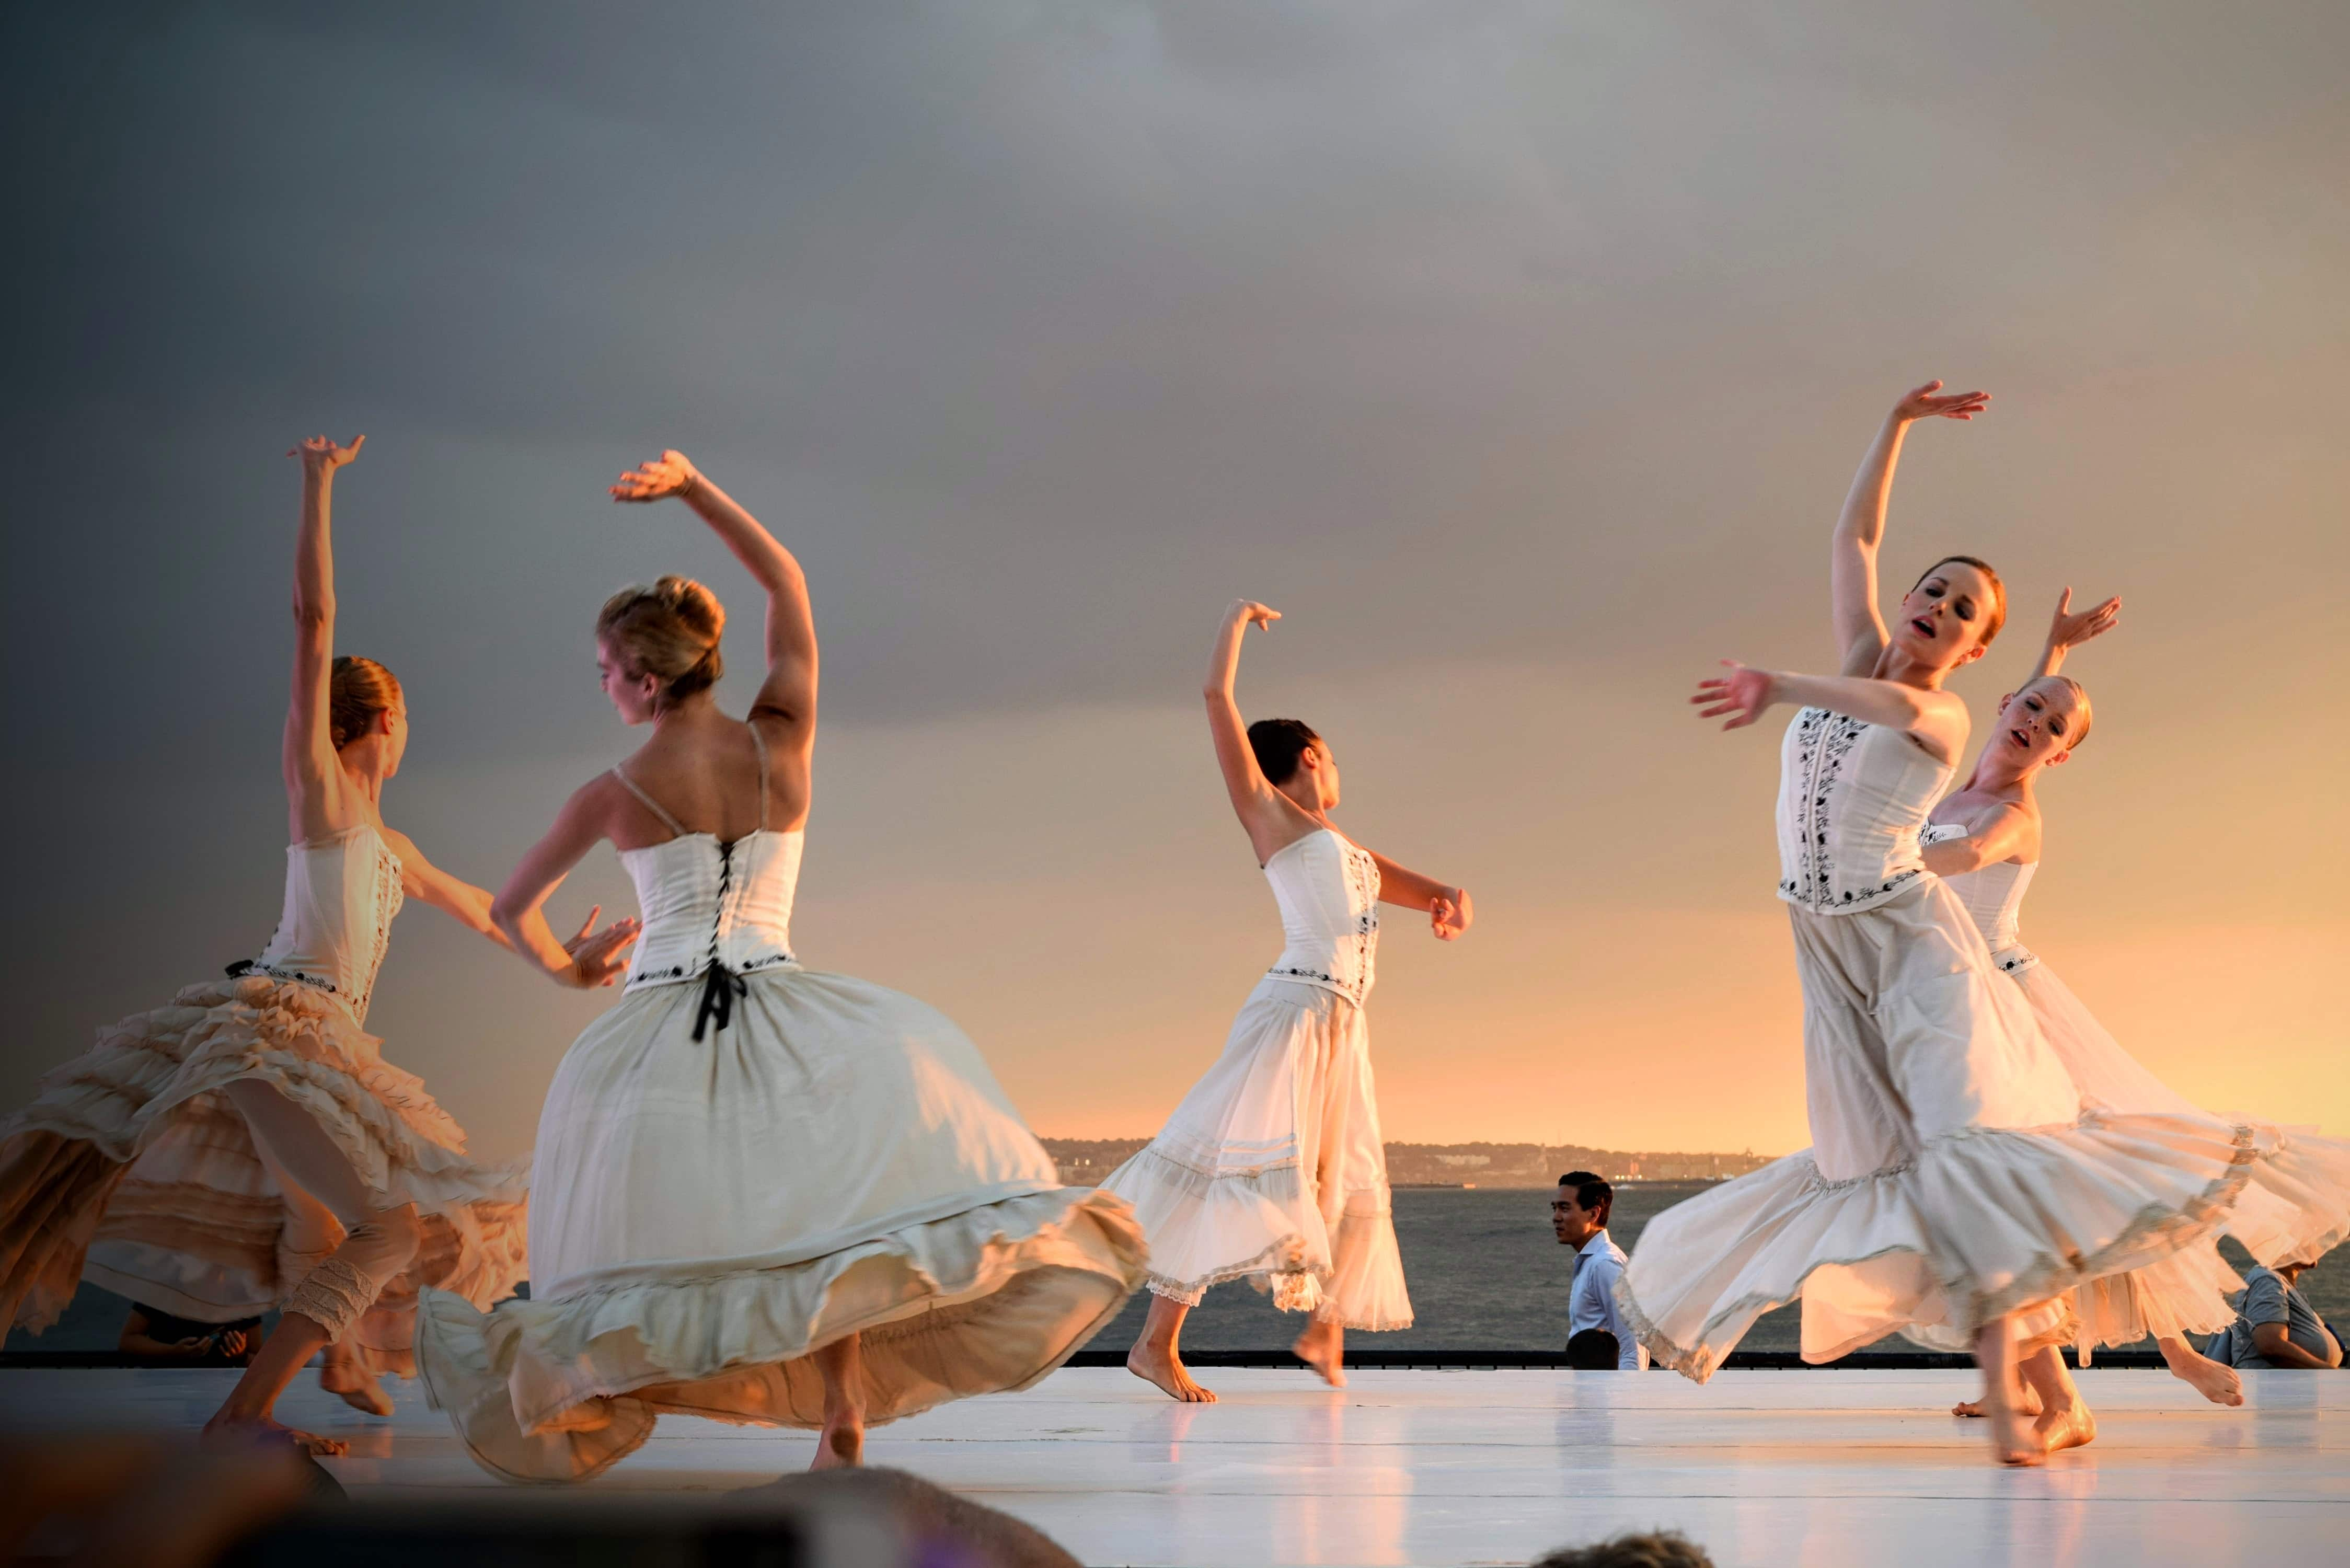 Dancers dressed in white on stage, with the sea in the background.